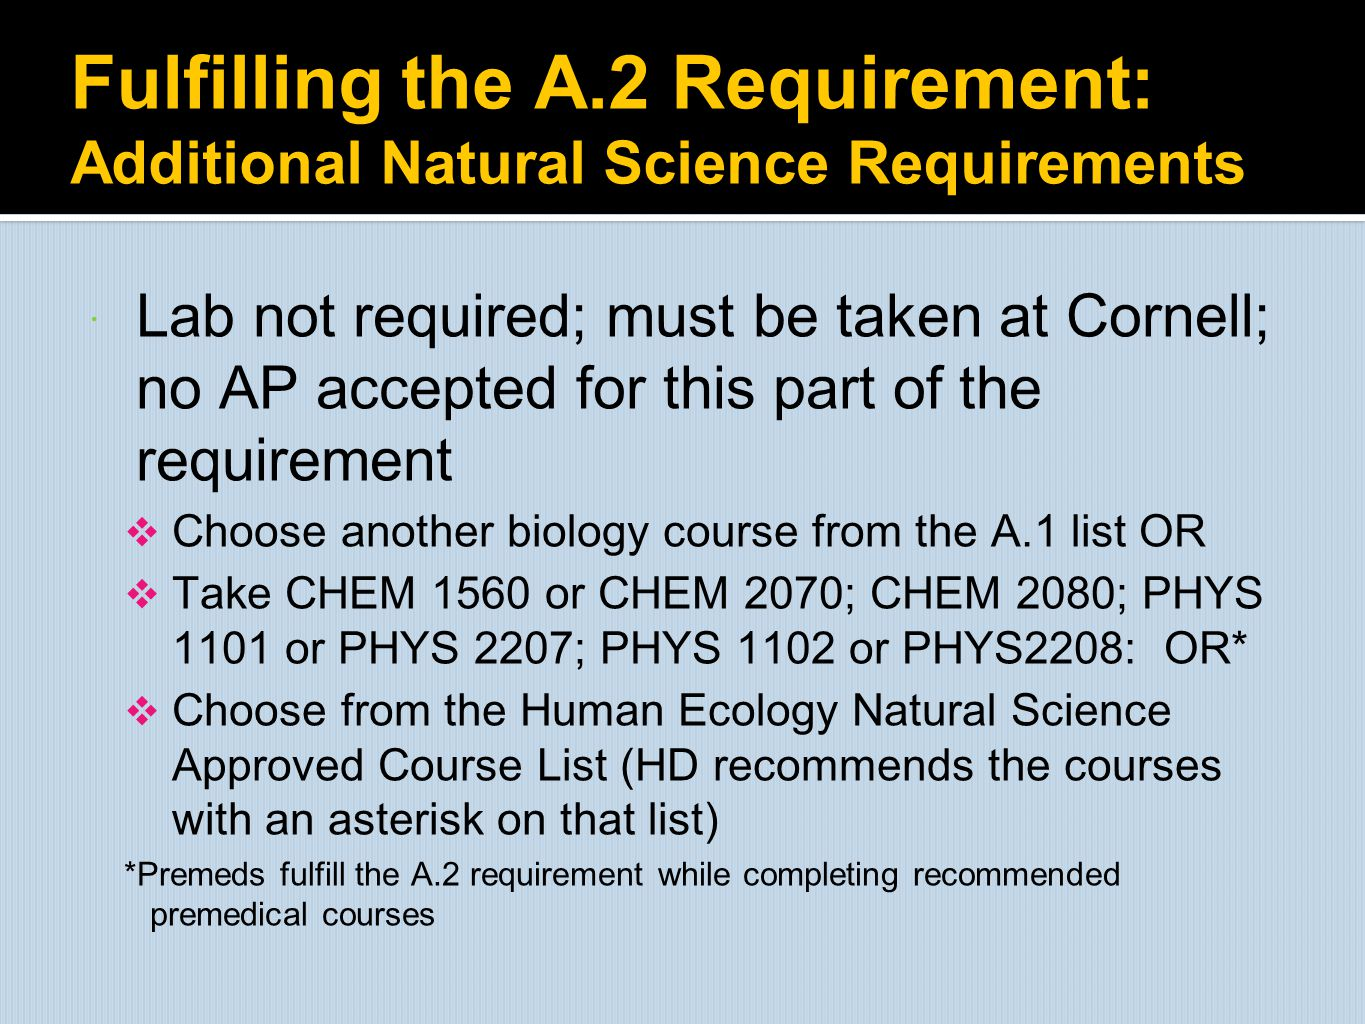 Fulfilling the A.2 Requirement: Additional Natural Science Requirements